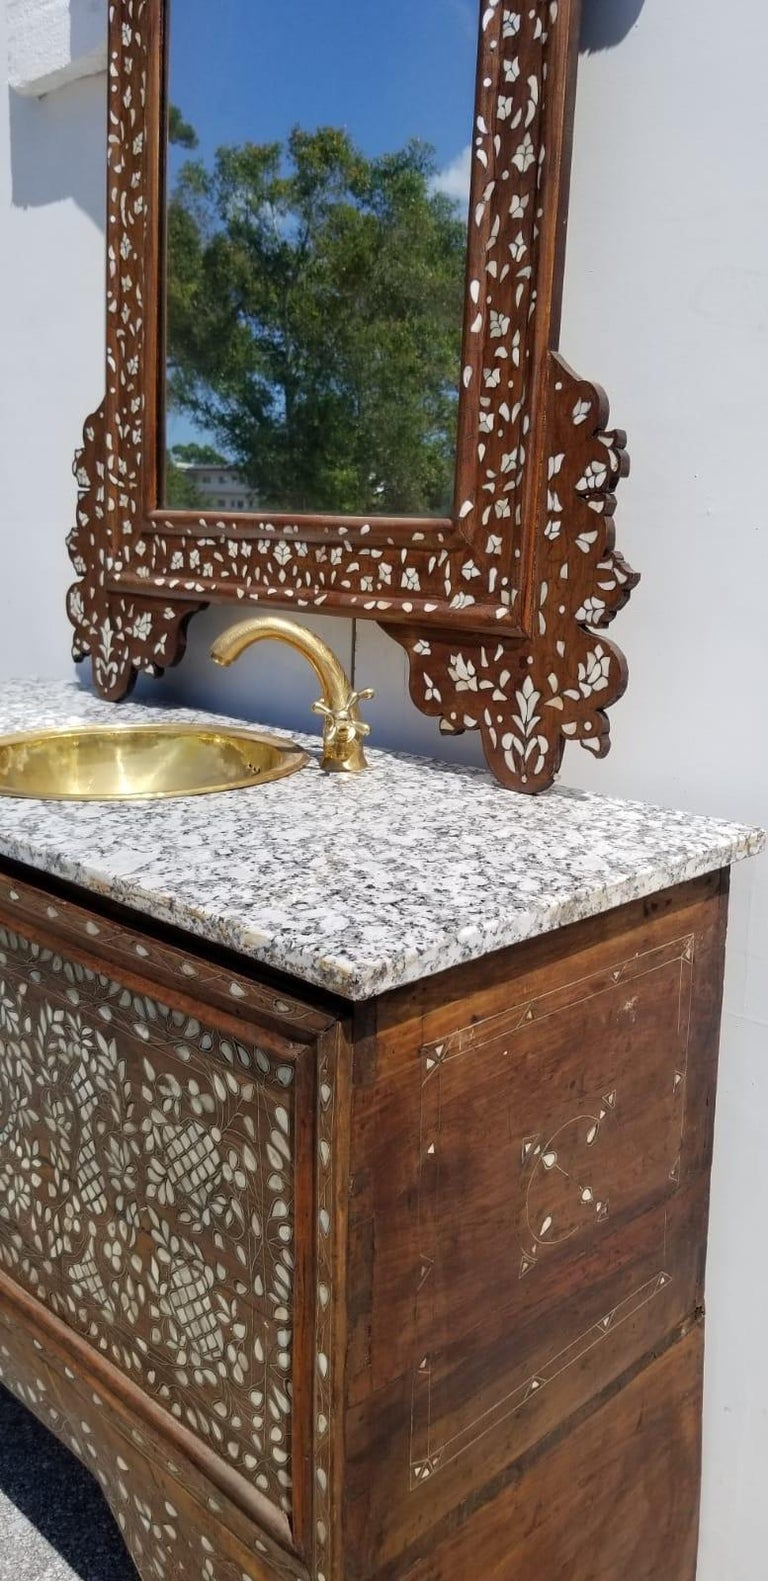 Mother-of-Pearl Beautiful 1900s Middle Eastern Mother of Pearl Vanity and Mirror For Sale